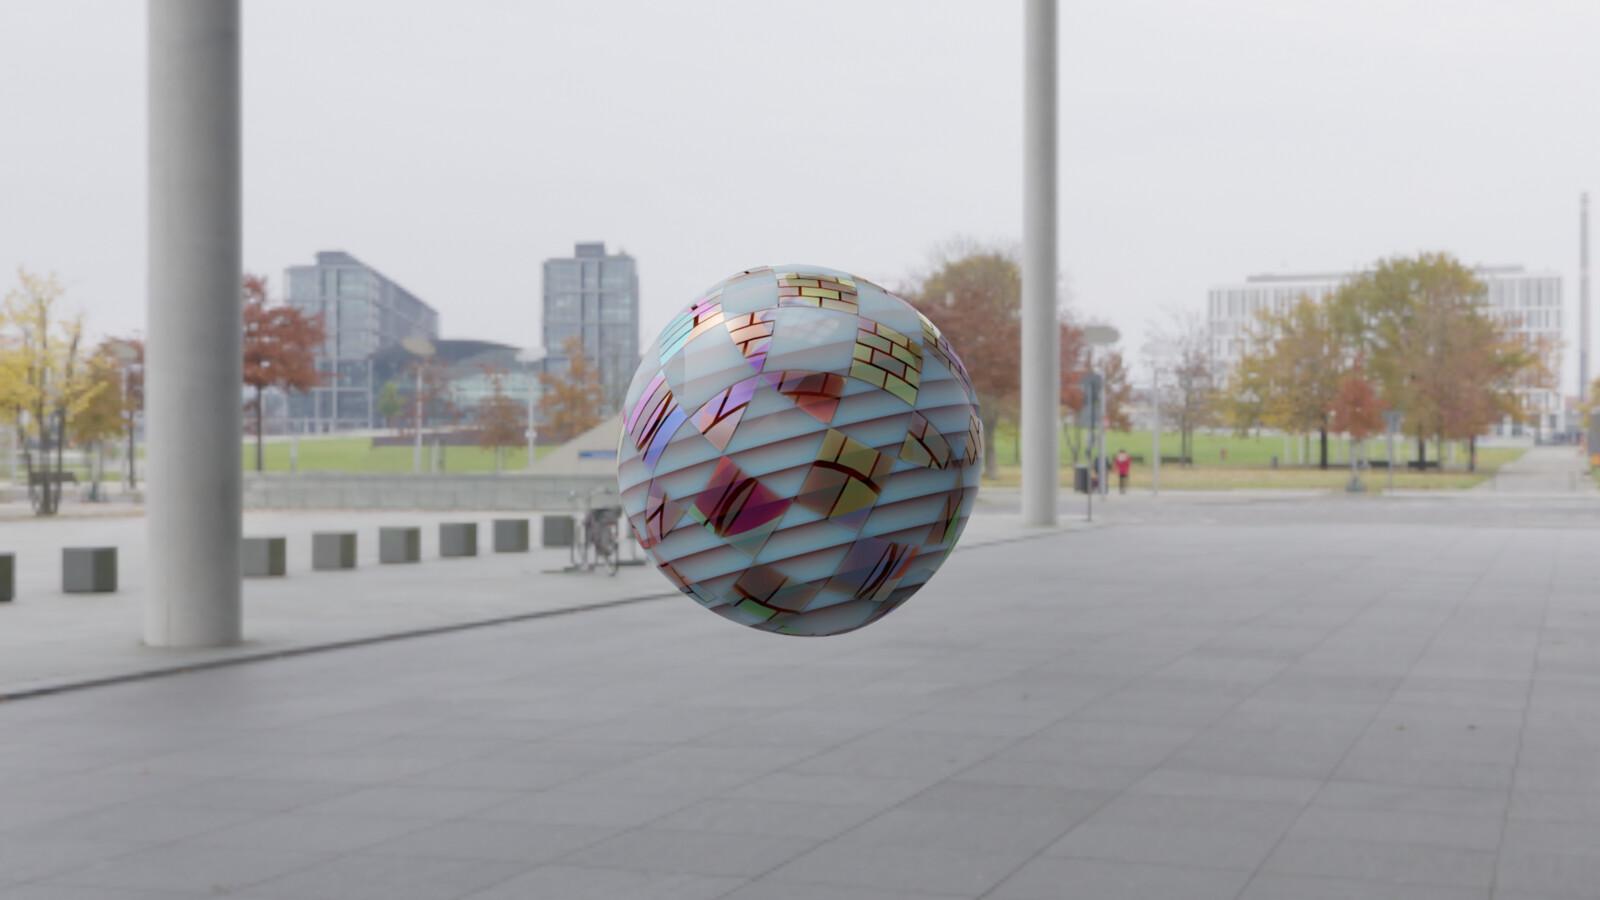 first test with procedural materials. Animation from all angles: https://www.deviantart.com/leowattenberg/art/Generated-Ball-806699372